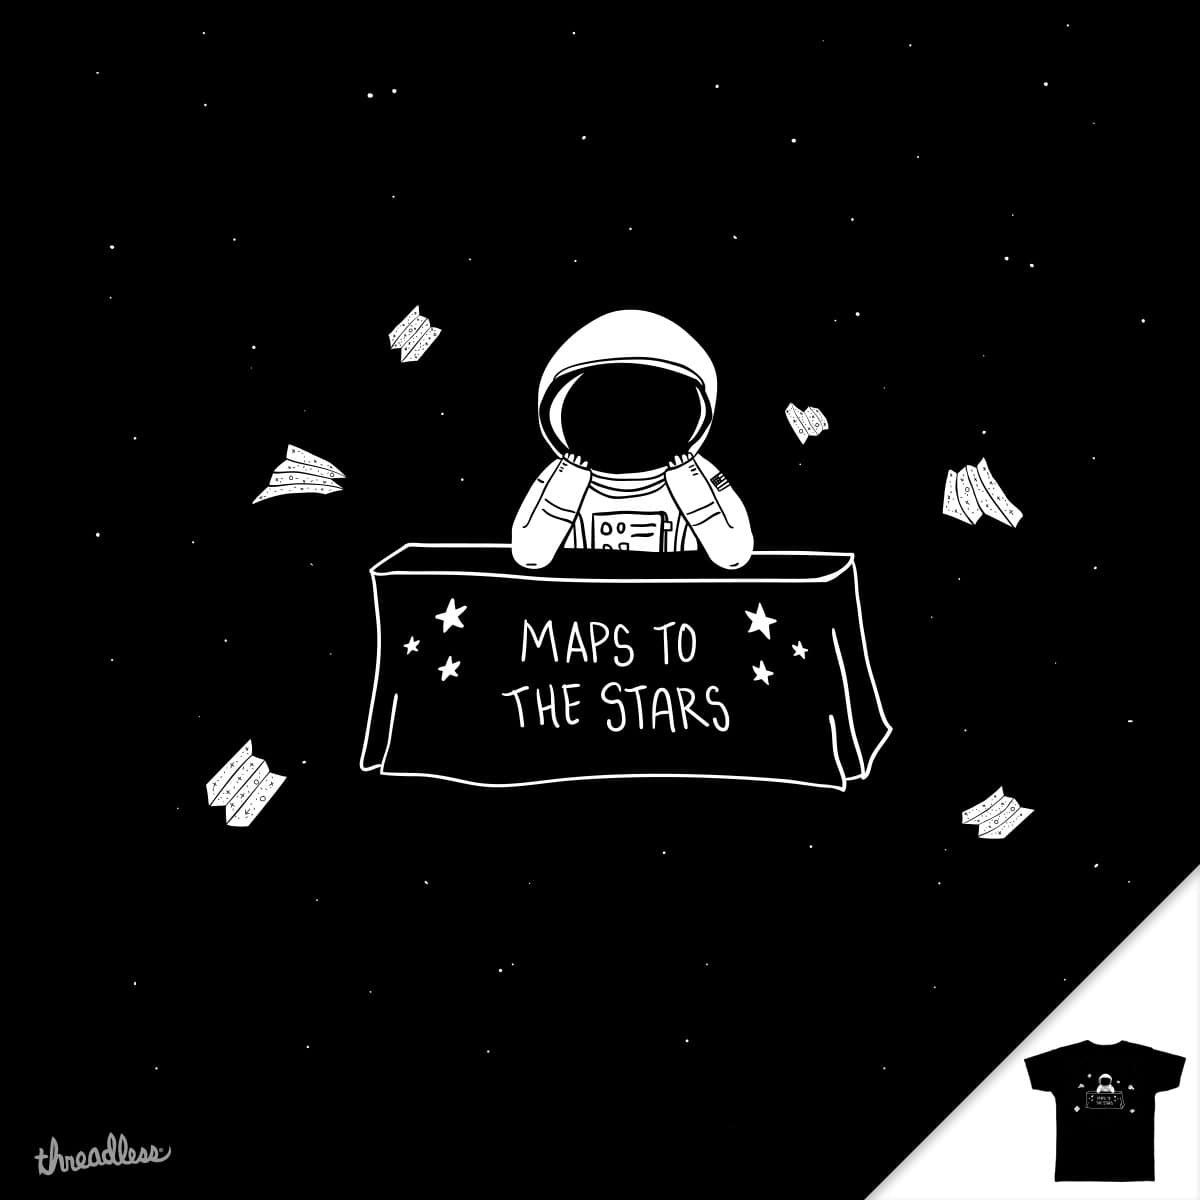 Selling Maps to the Stars by murraymullet on Threadless